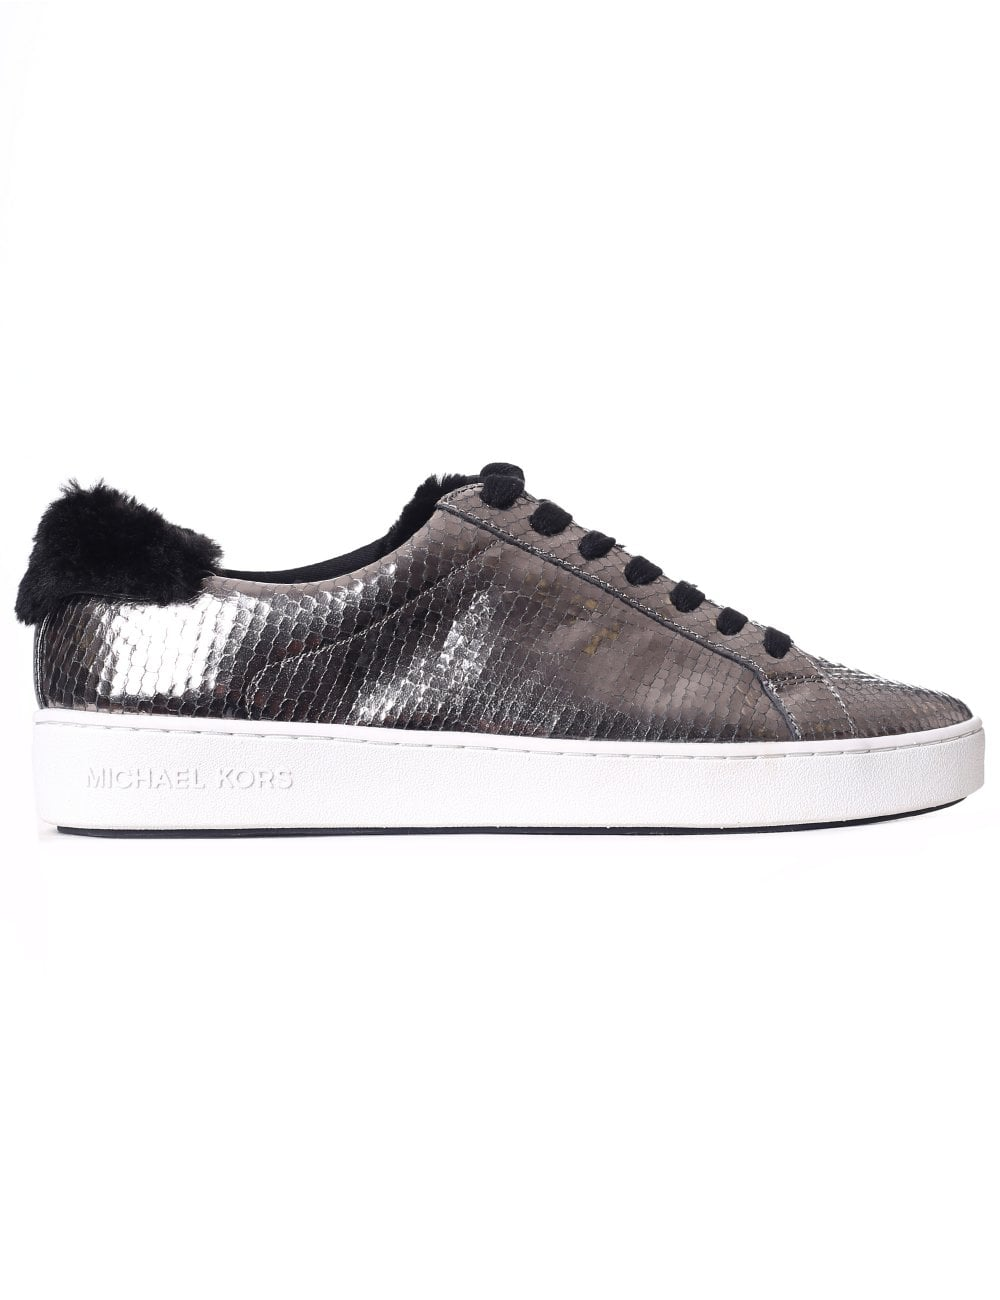 1a2bdd21bae Michael Kors Women s Irving Lace Up Trainer Arthracite